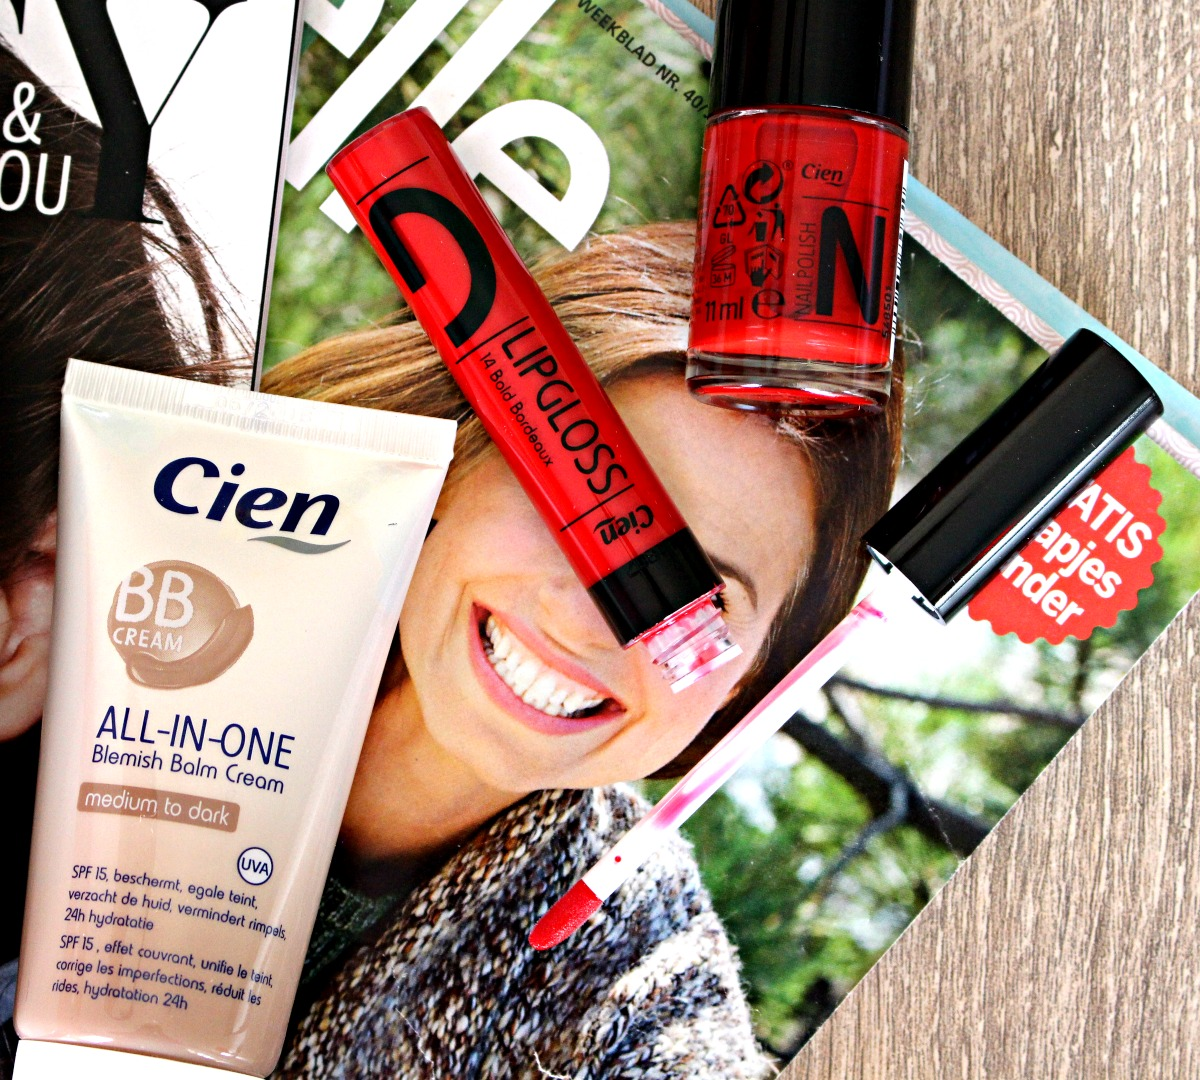 Cien BB Crème all-in-one